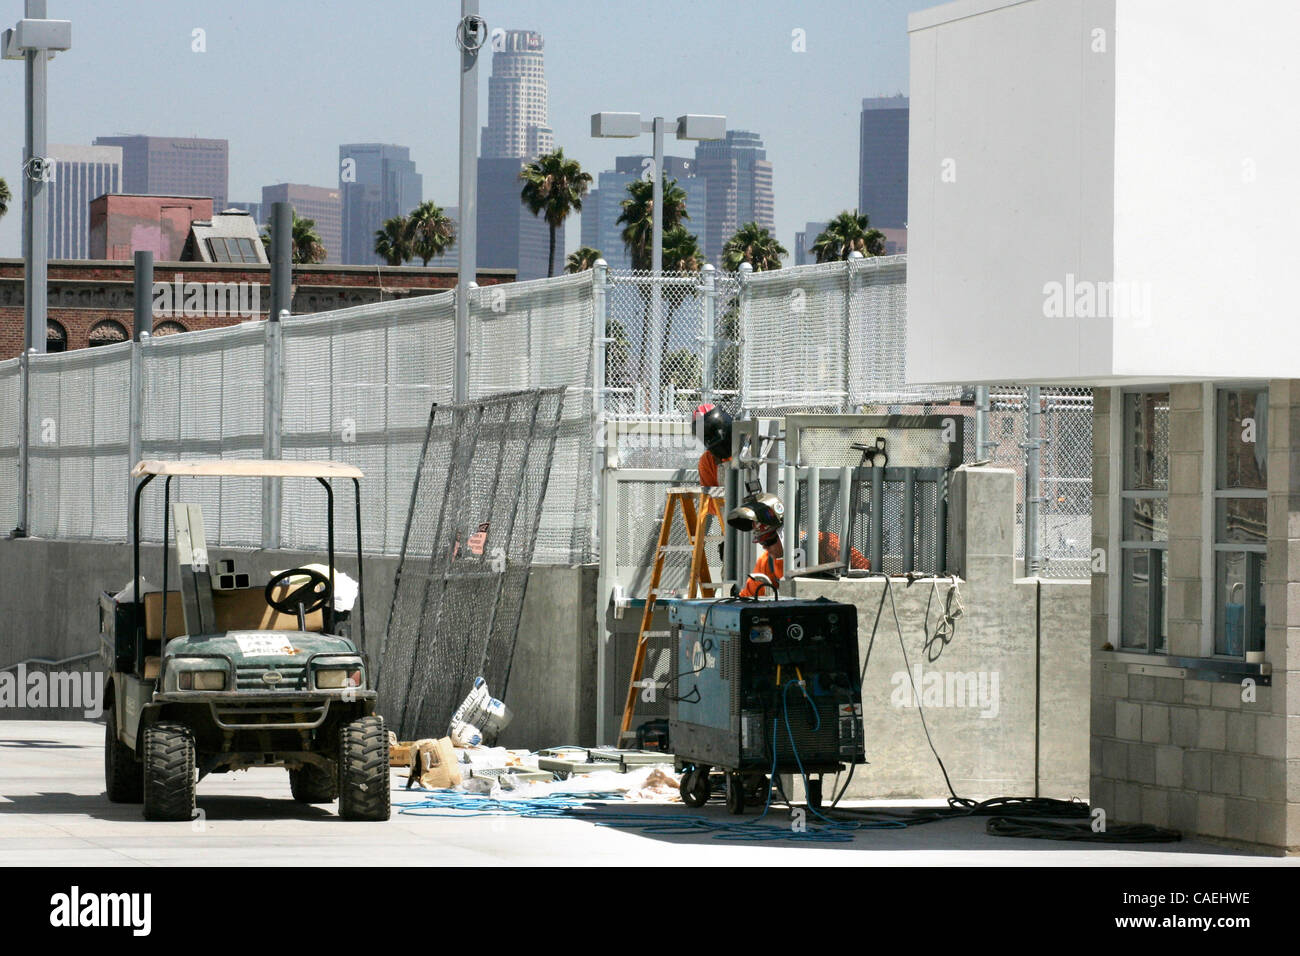 Aug. 23, 2010 - Los Angeles, California, U.S - Welders put finishing touches near the pool at the new and most expensive - Stock Image